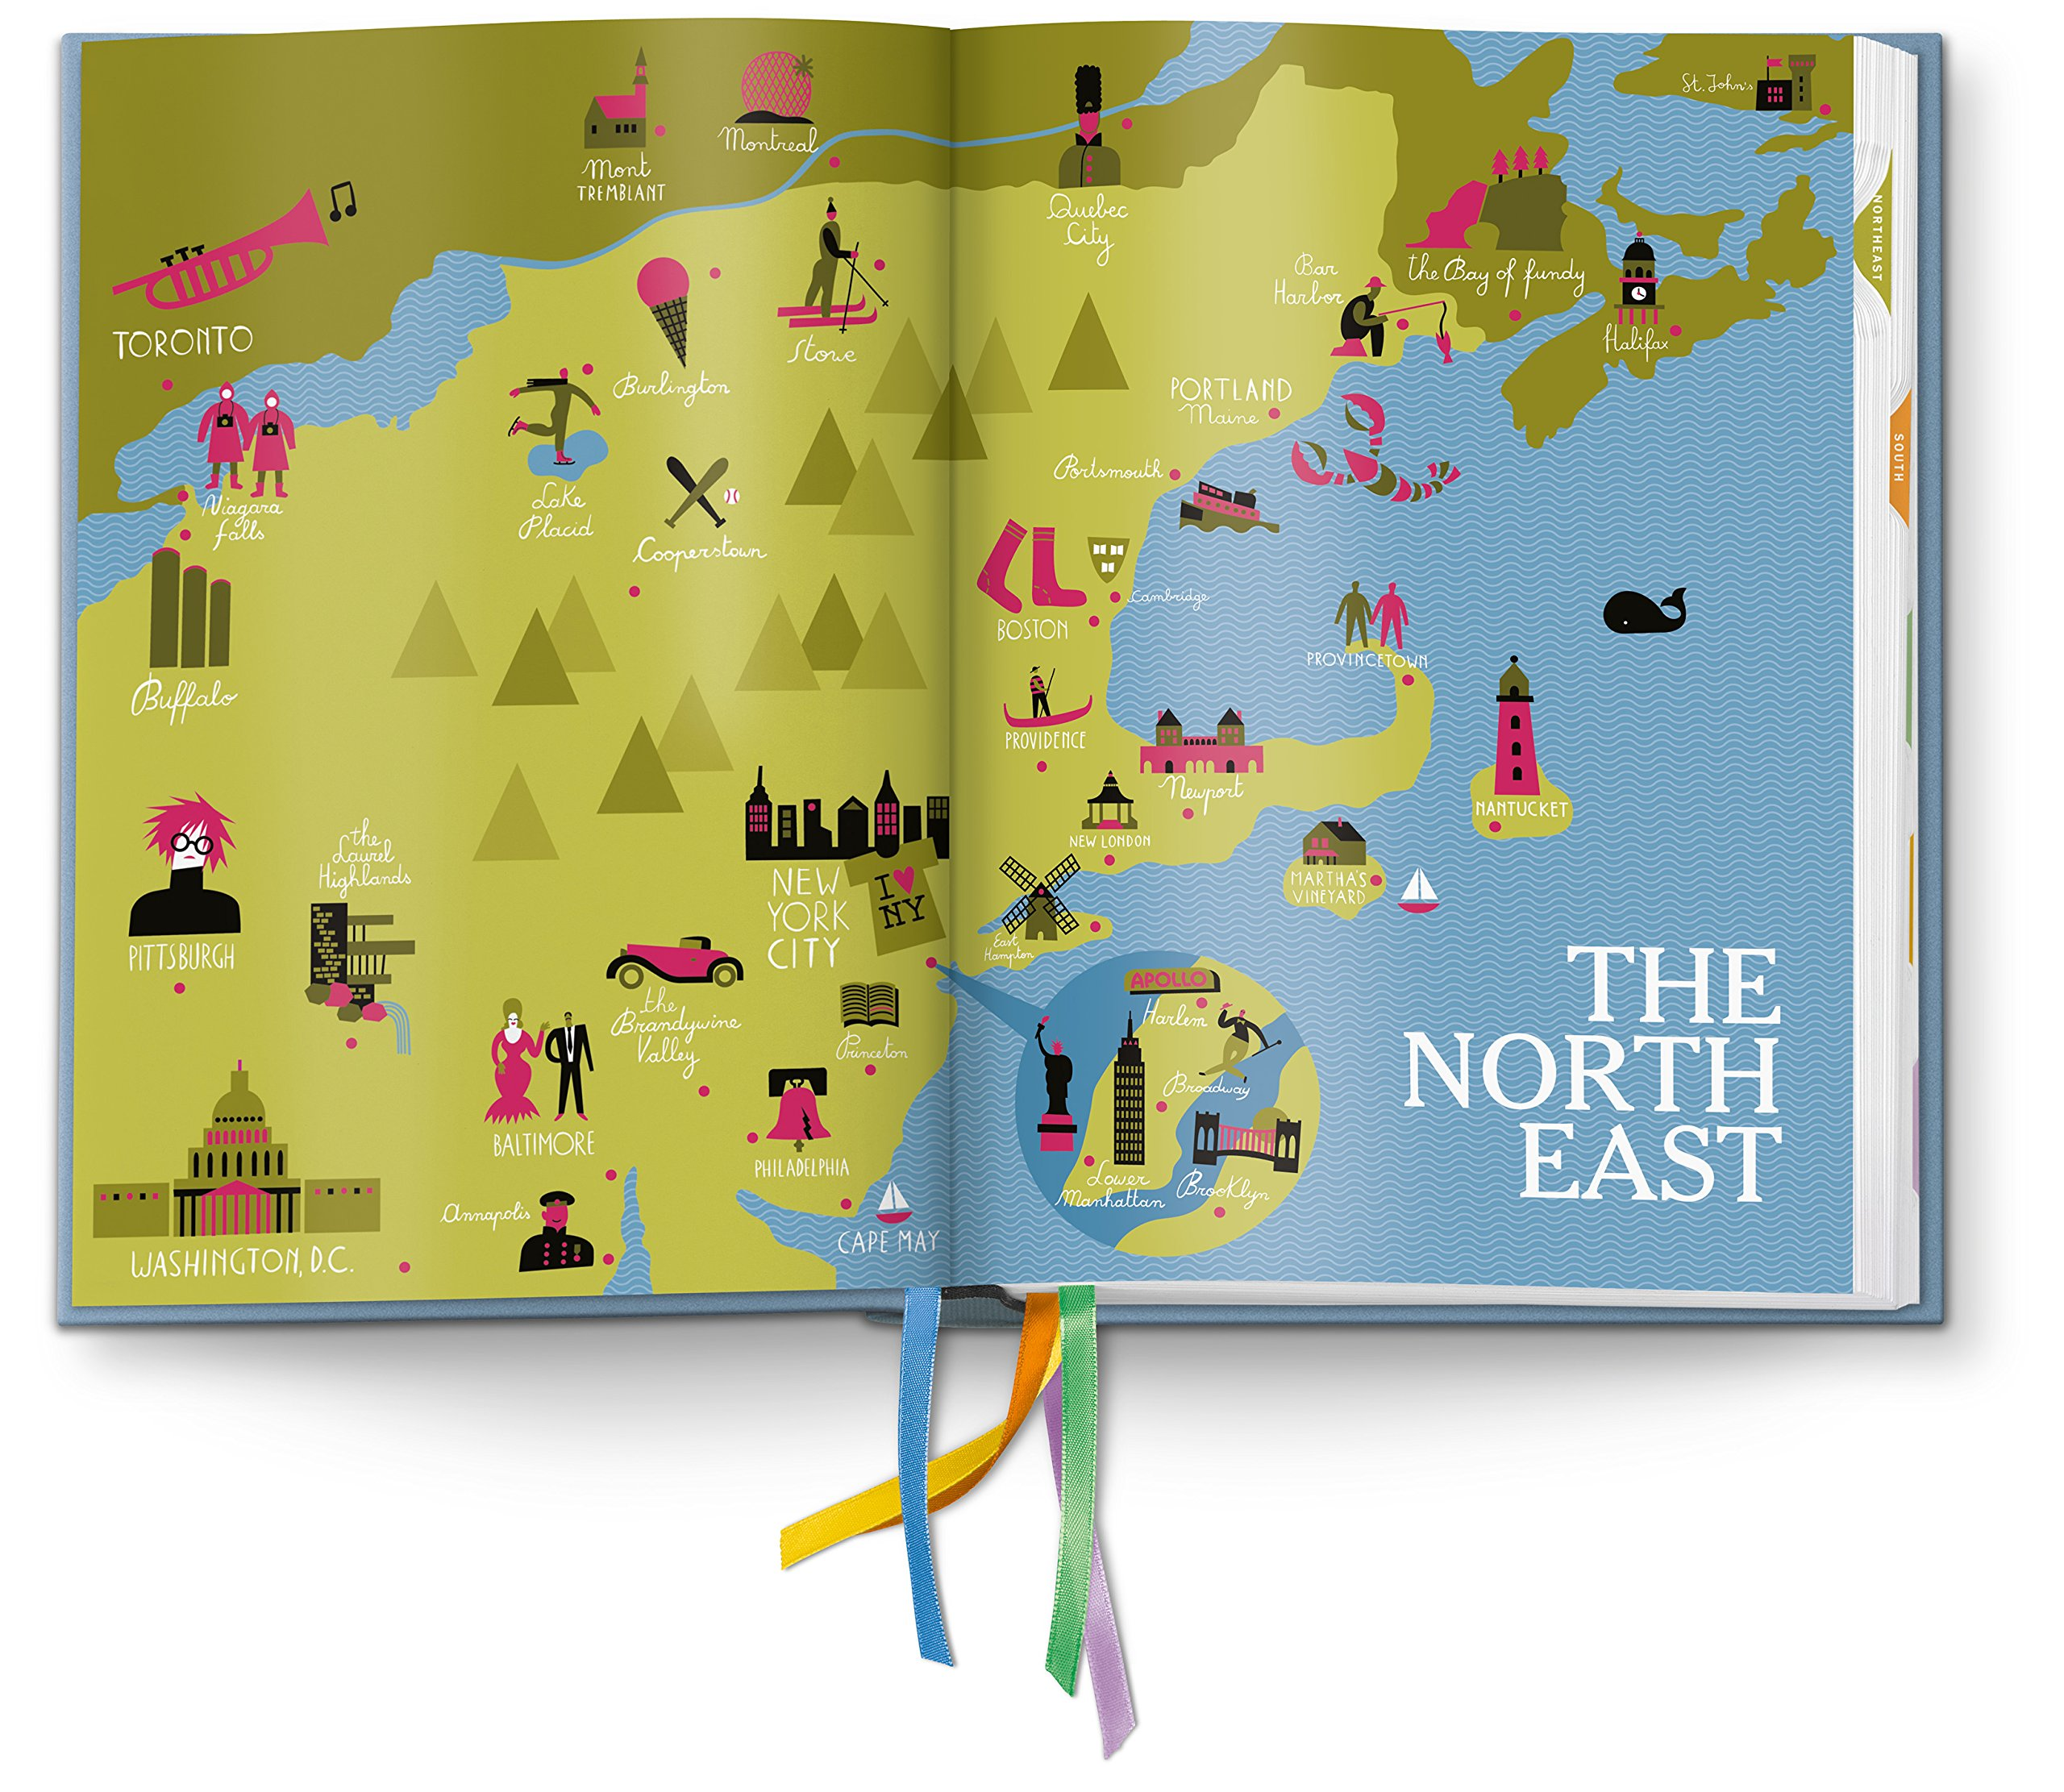 The New York Times 36 Hours 150 Weekends In The Usa Canada Barbara Ireland 9783836526395 Amazon Com Books